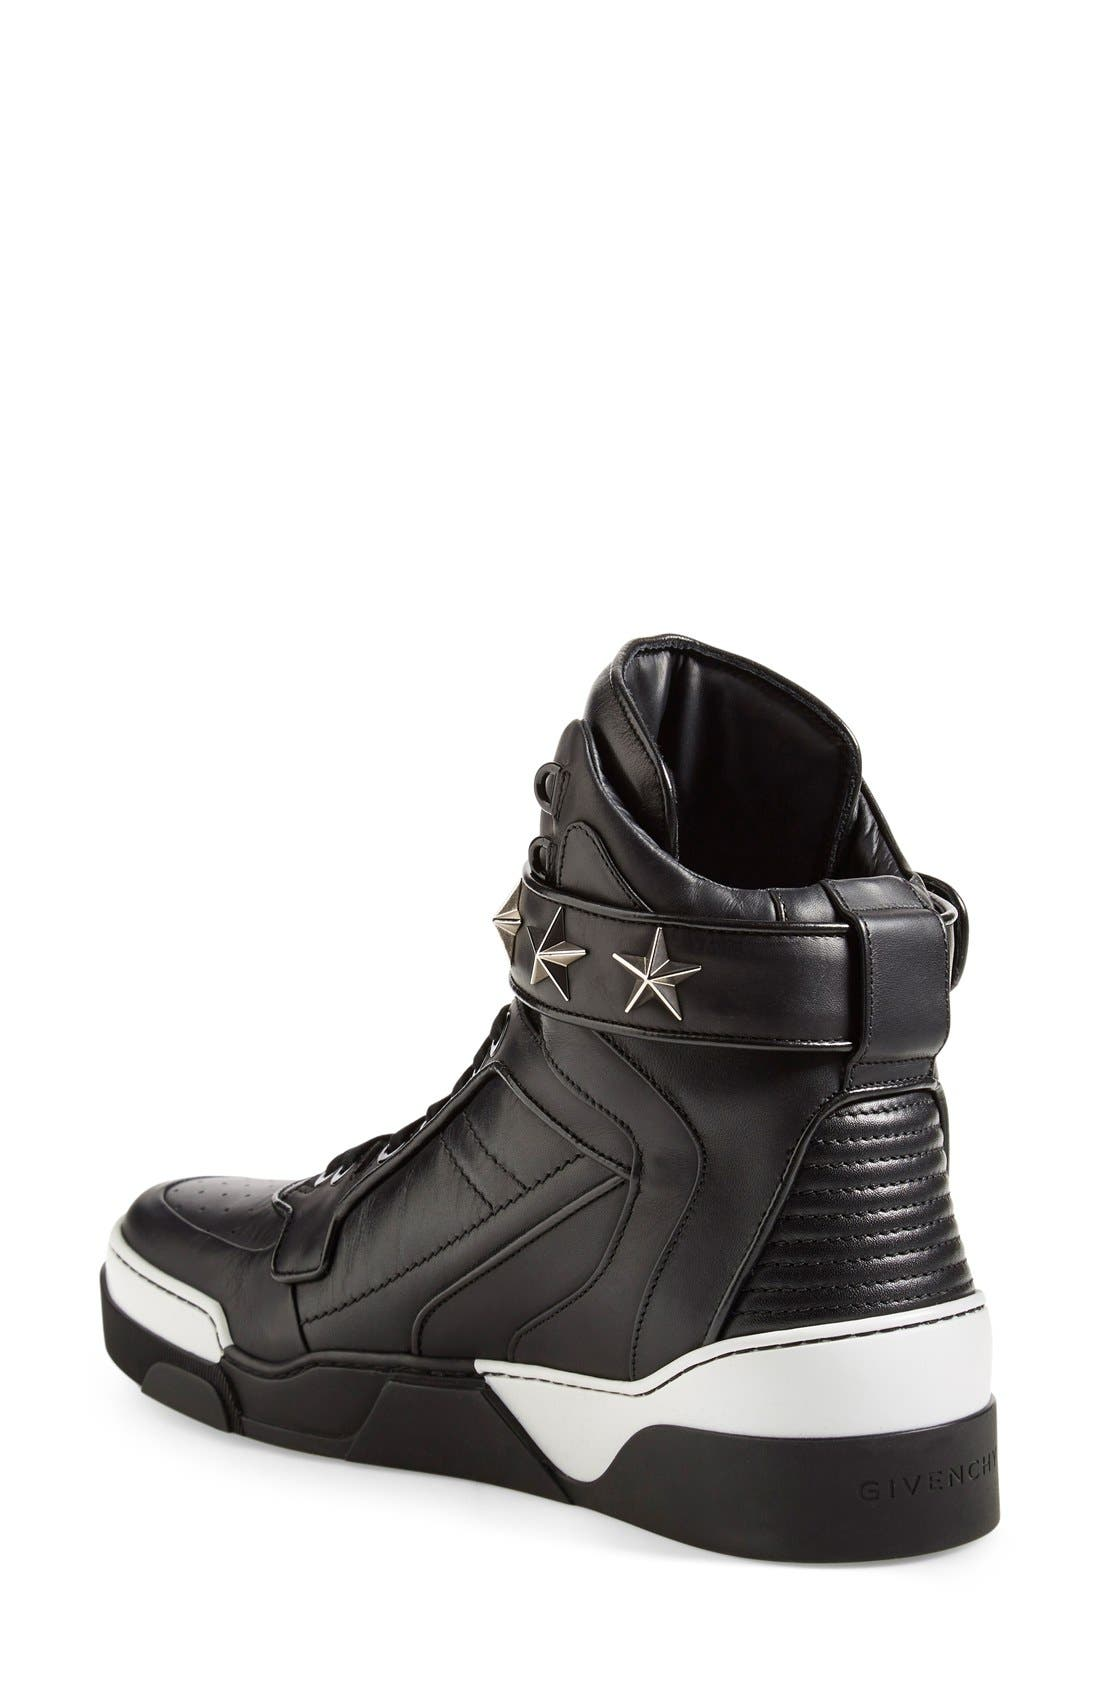 'Tyson' High Top Sneaker,                             Alternate thumbnail 10, color,